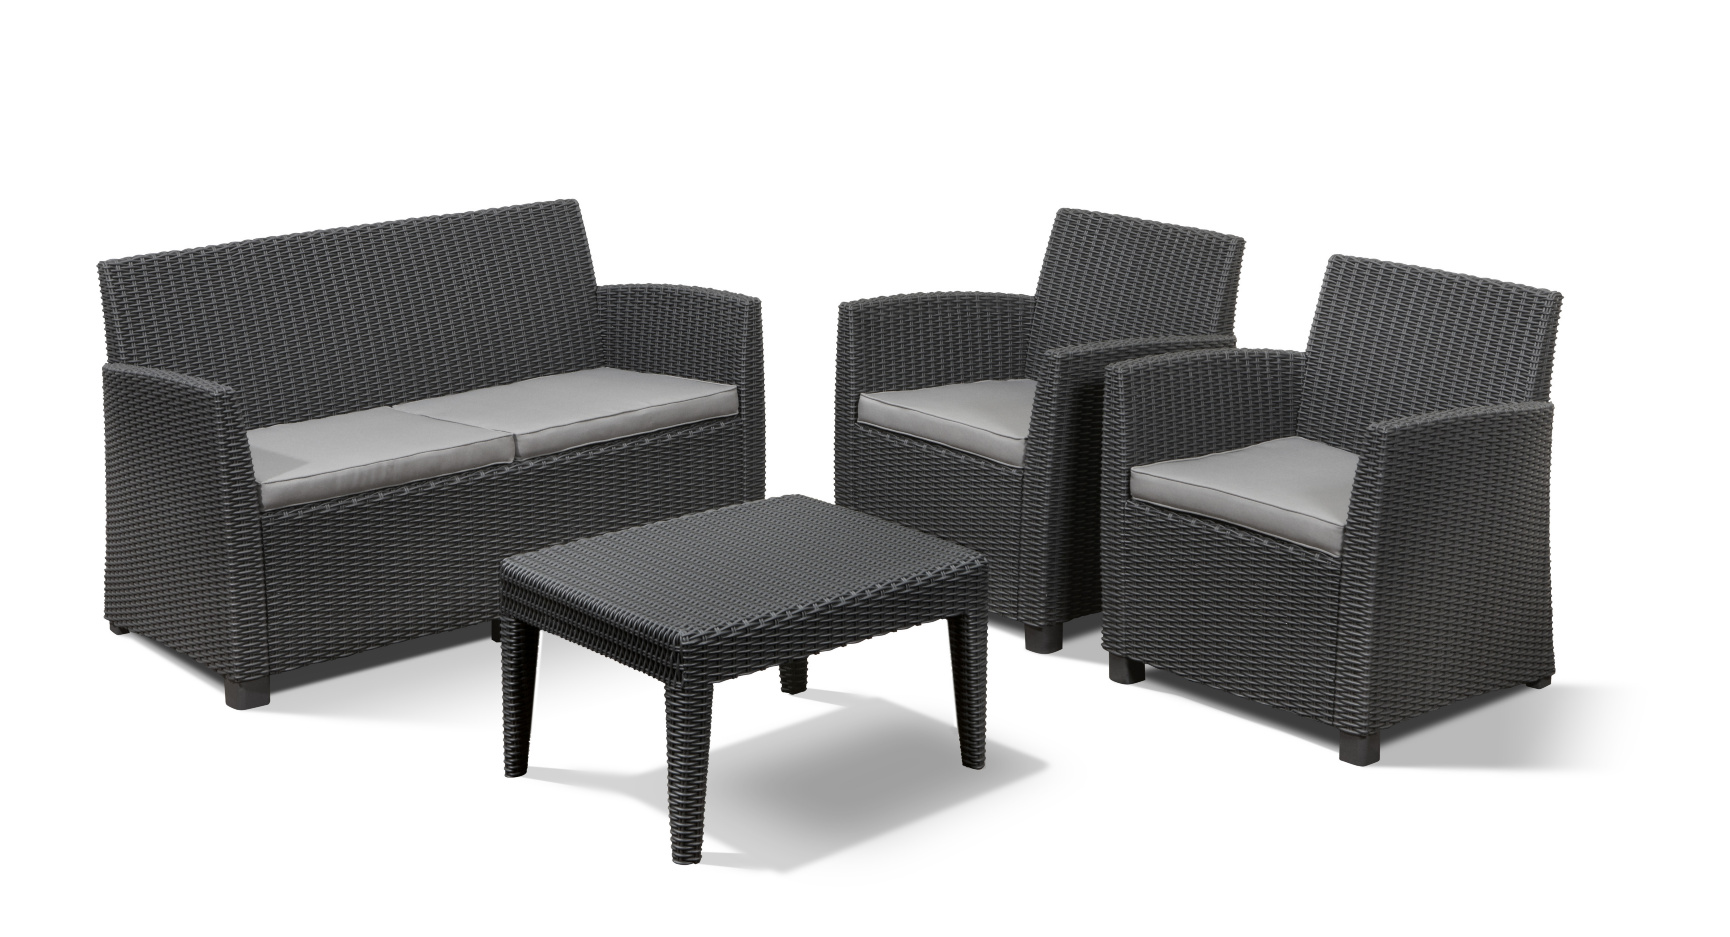 allibert corona lounge set graphite allibert. Black Bedroom Furniture Sets. Home Design Ideas